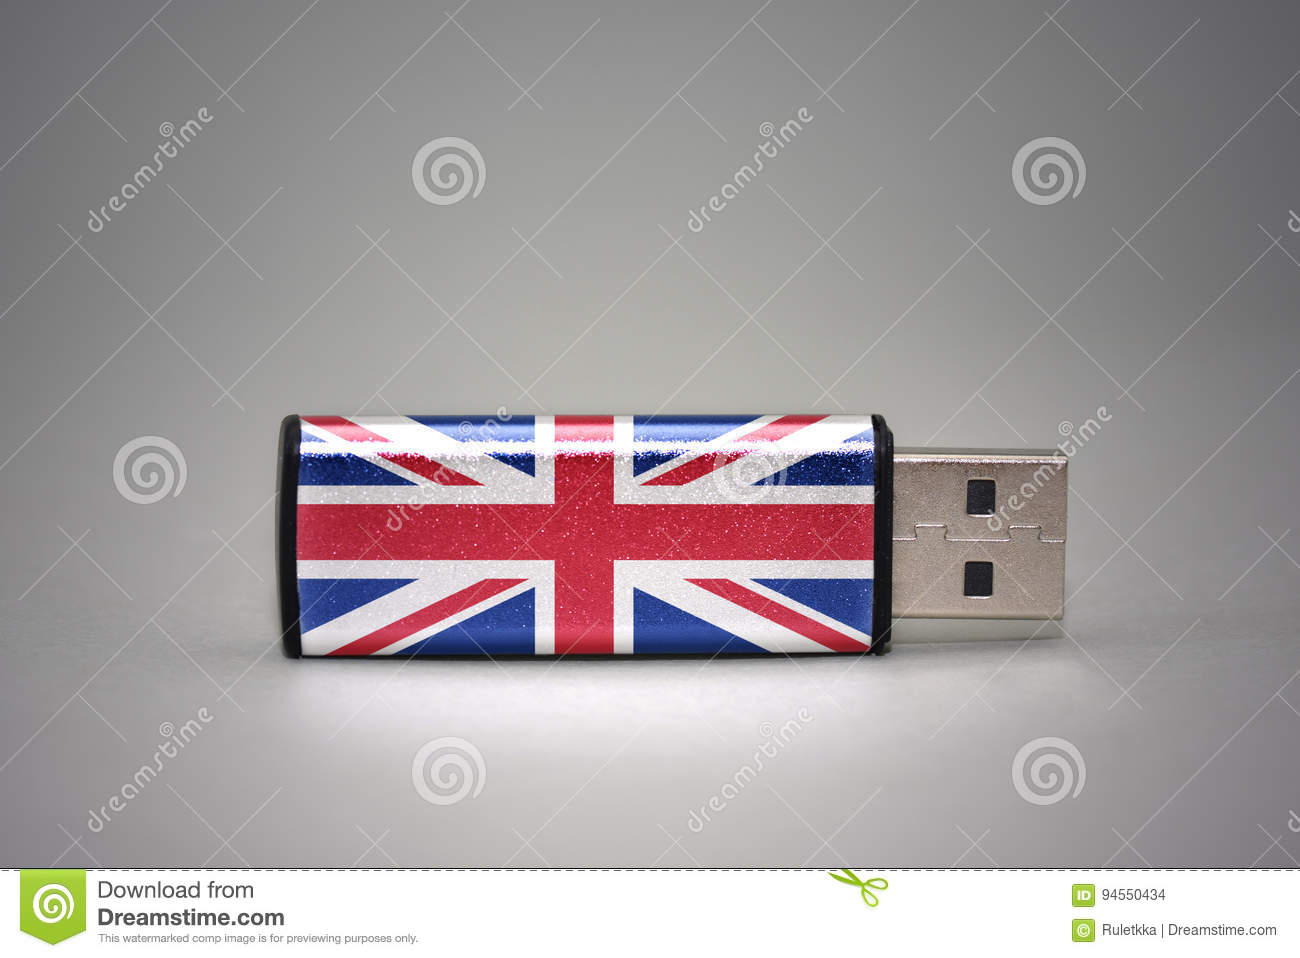 Usb flash drive with the national flag of great britain on gray background.